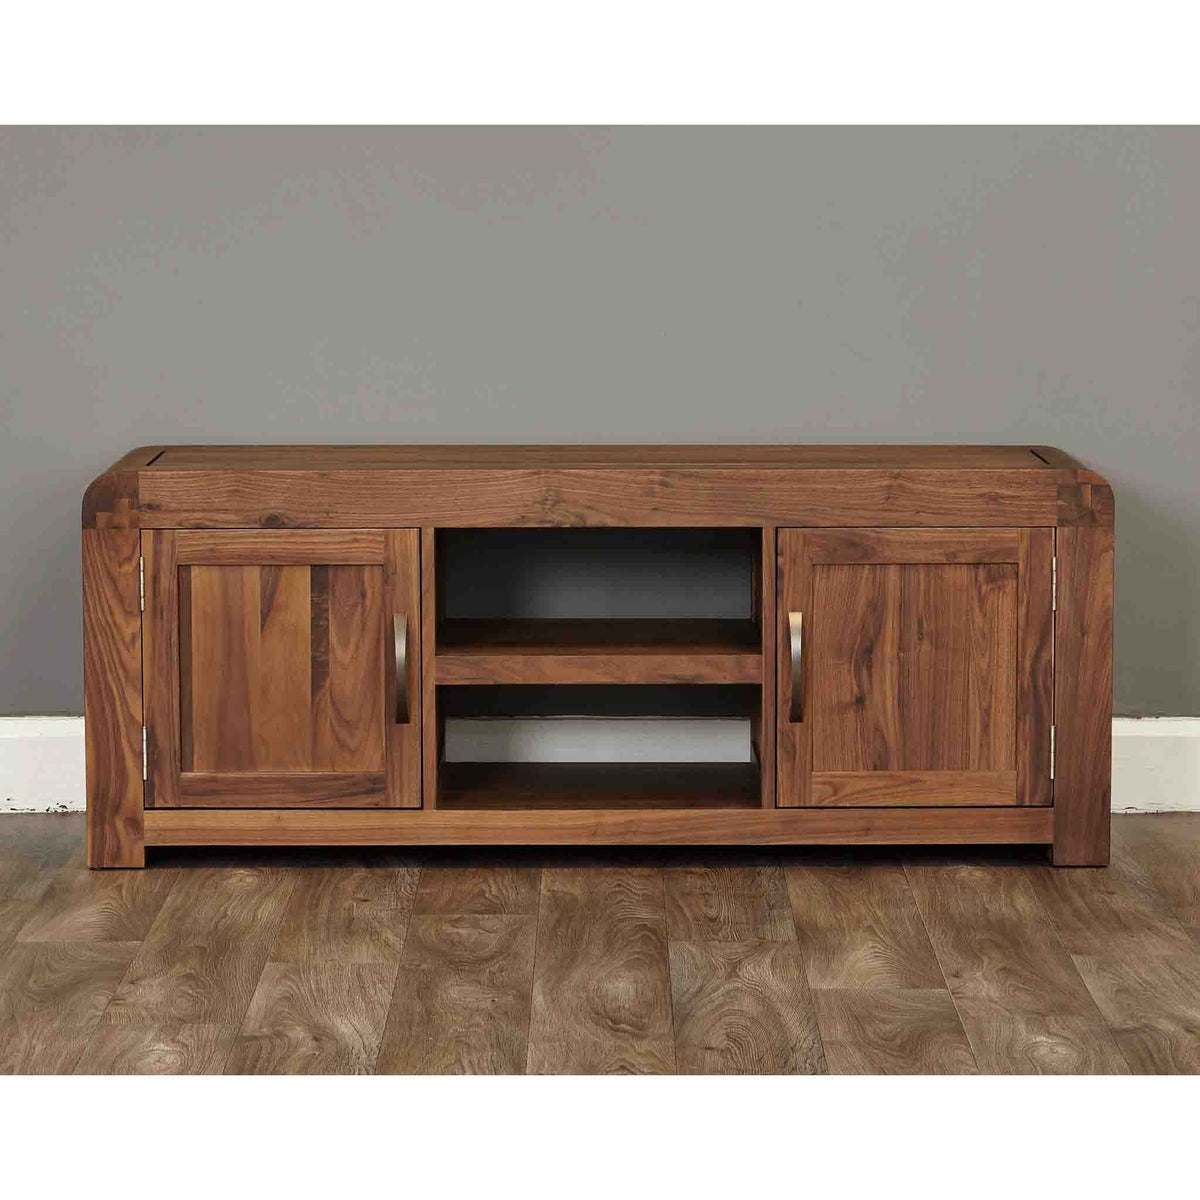 The Salem Walnut Large Wooden Television Stand Storage Cabinet 142cm from Roseland Furniture